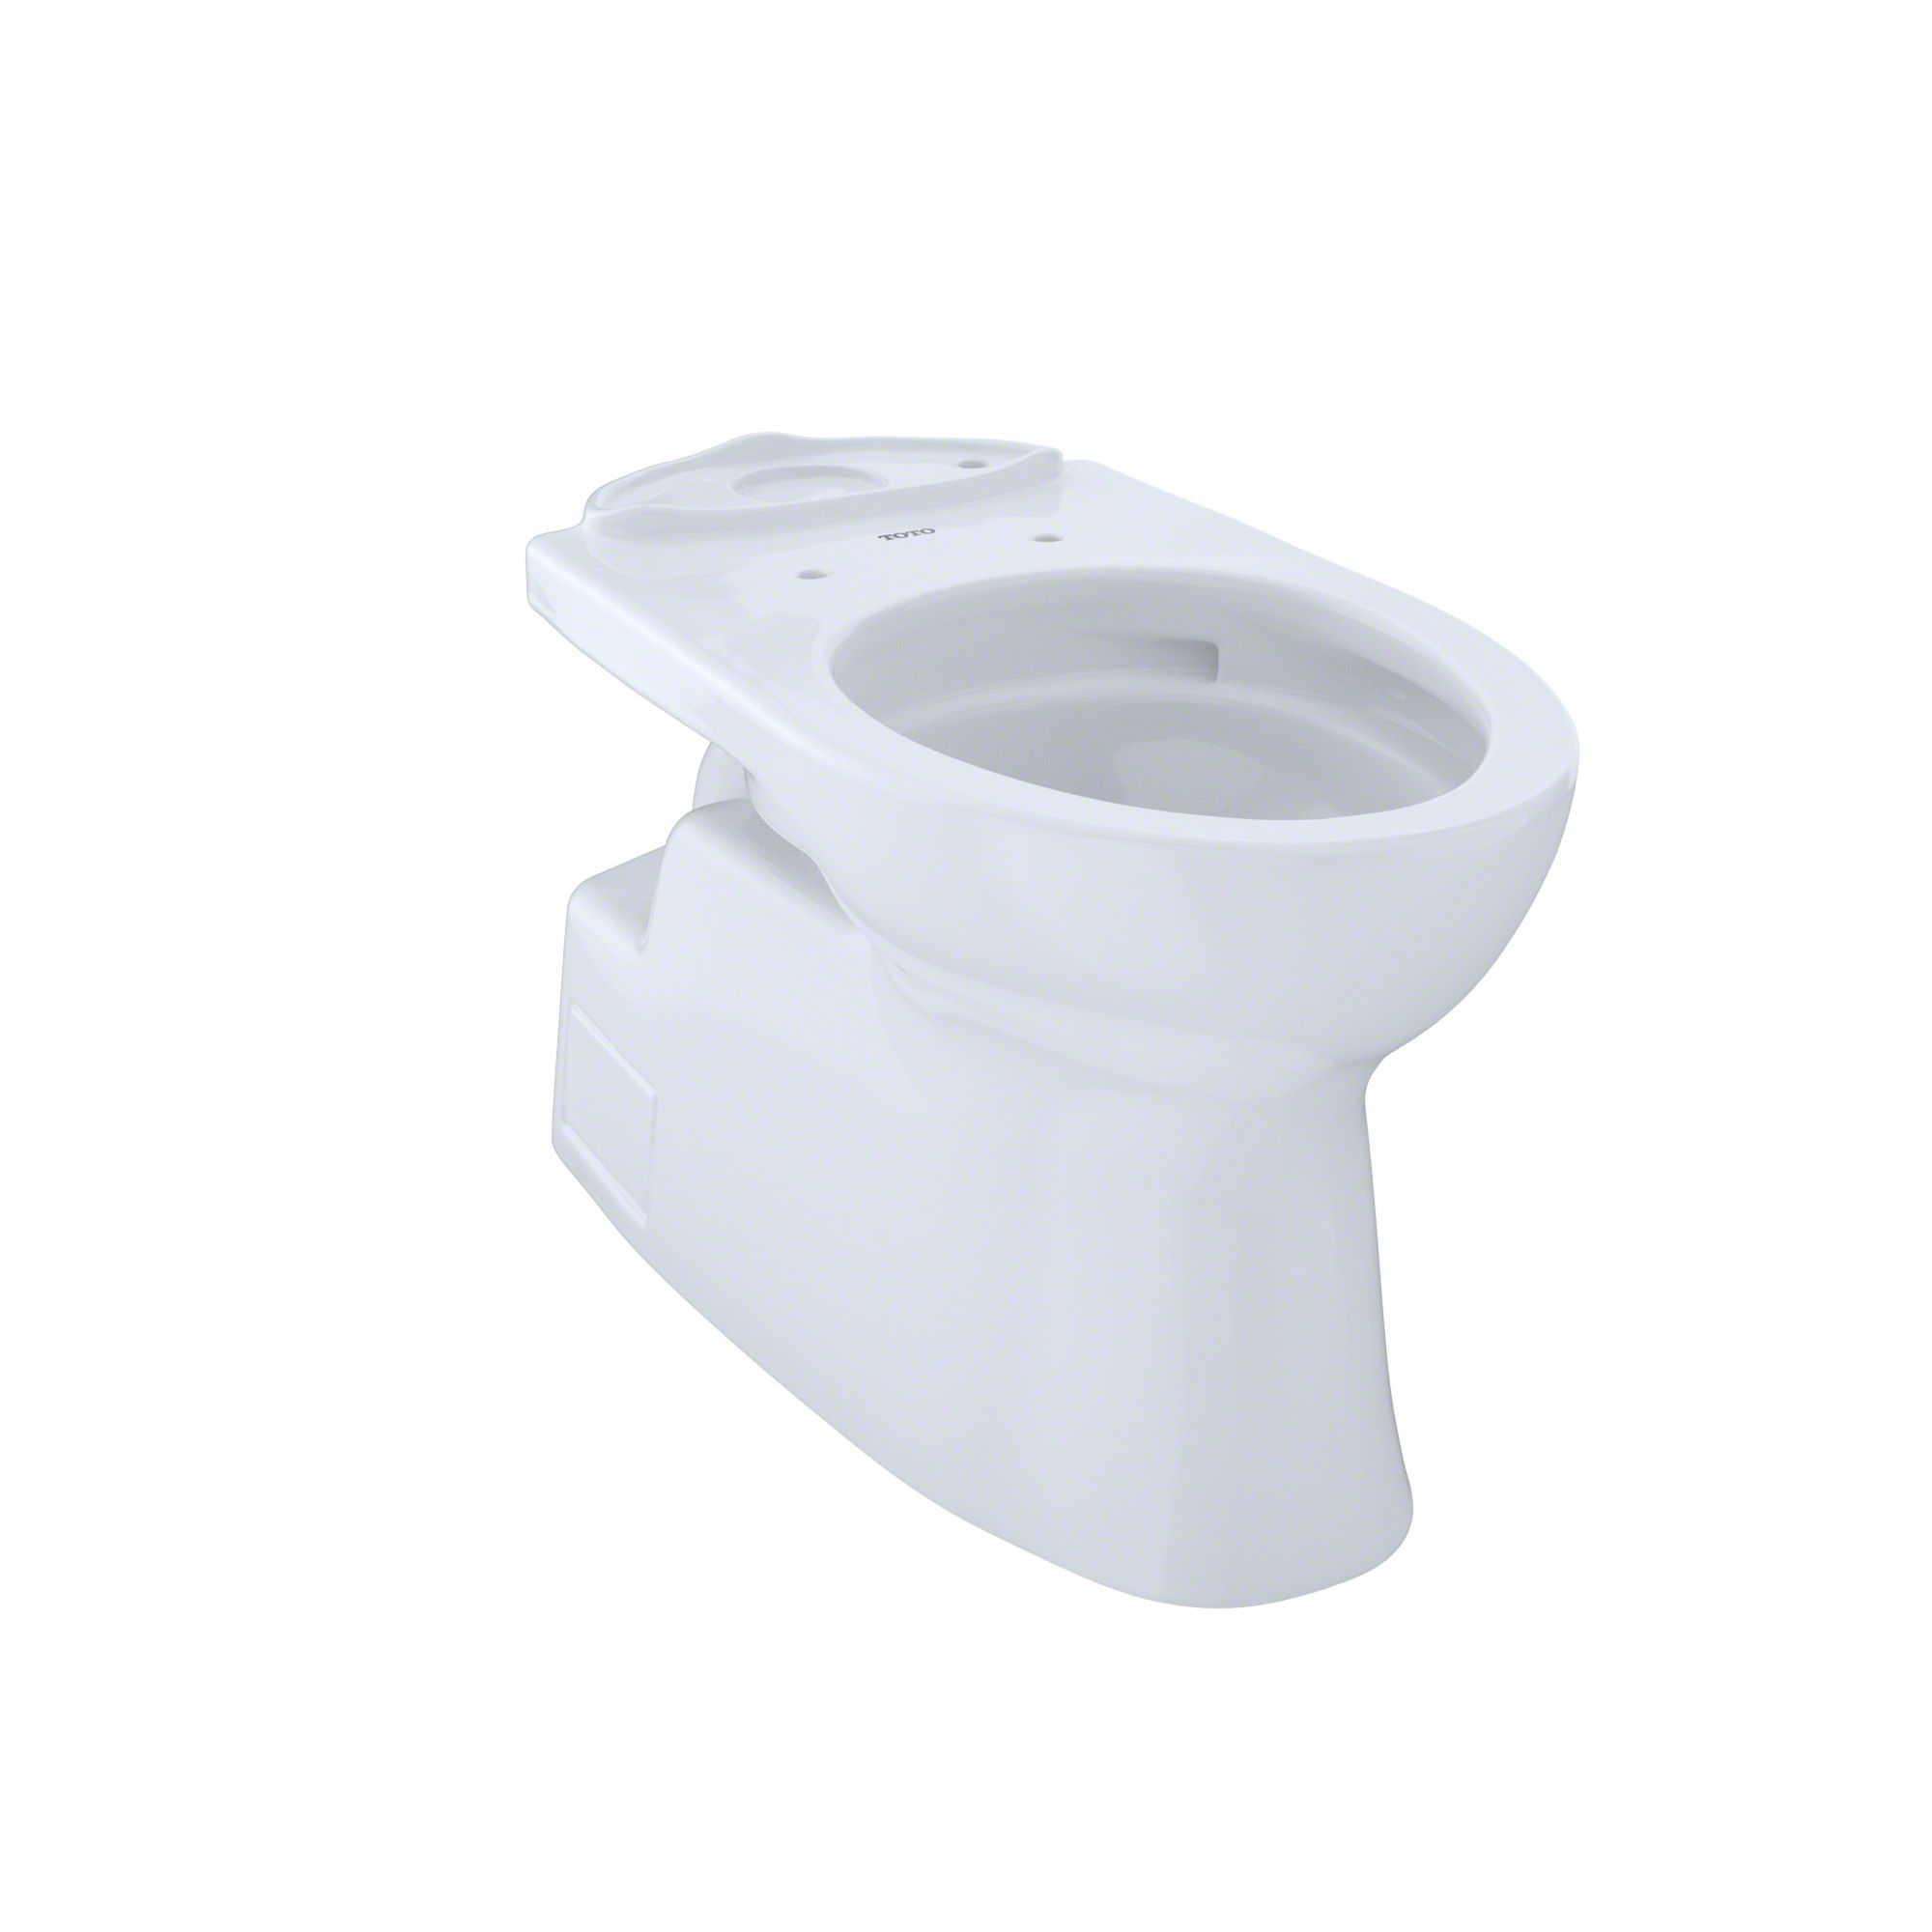 Toto Vespin Ii Universal Height Elongated Skirted Toilet Bowl With